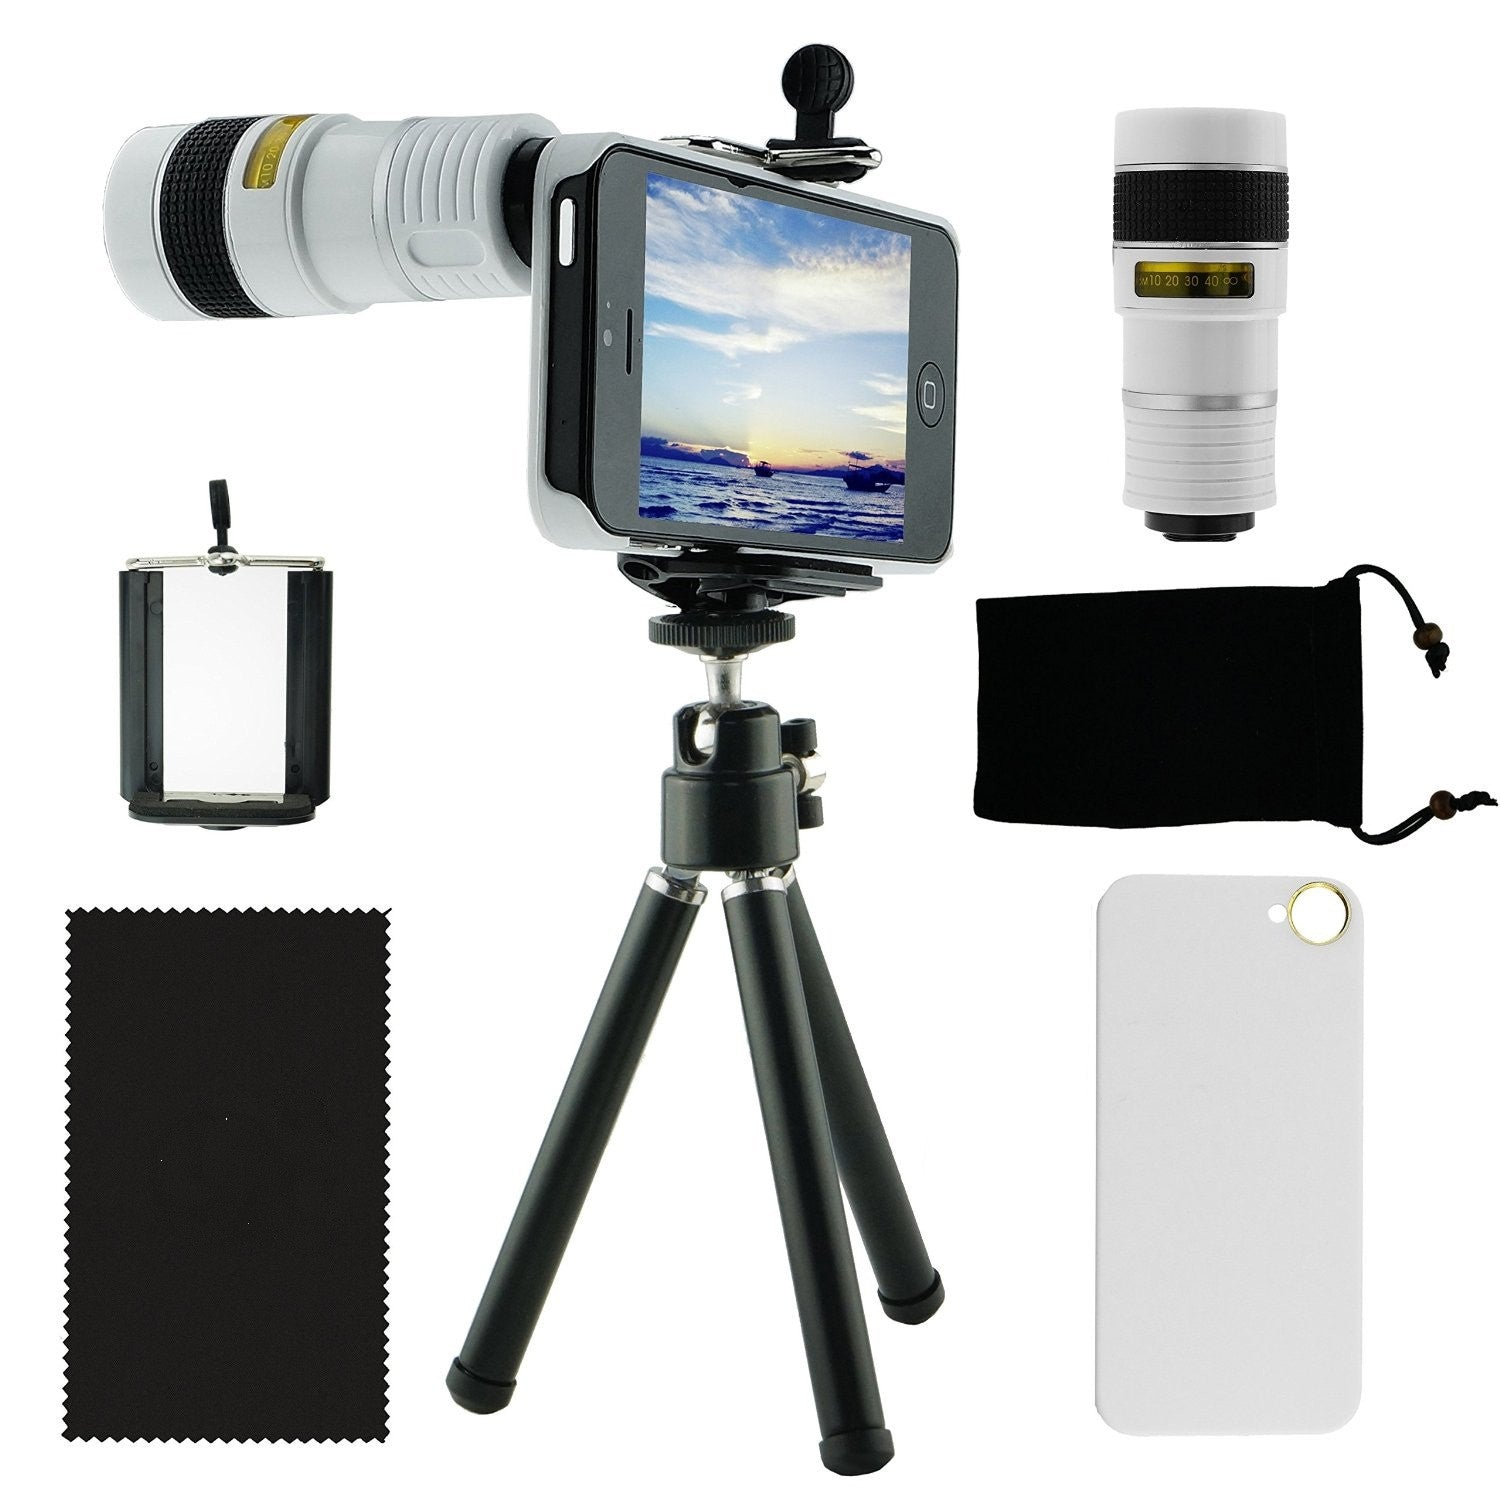 8X Zoom Telescope lens Kit for iPhone 5 With Tripod